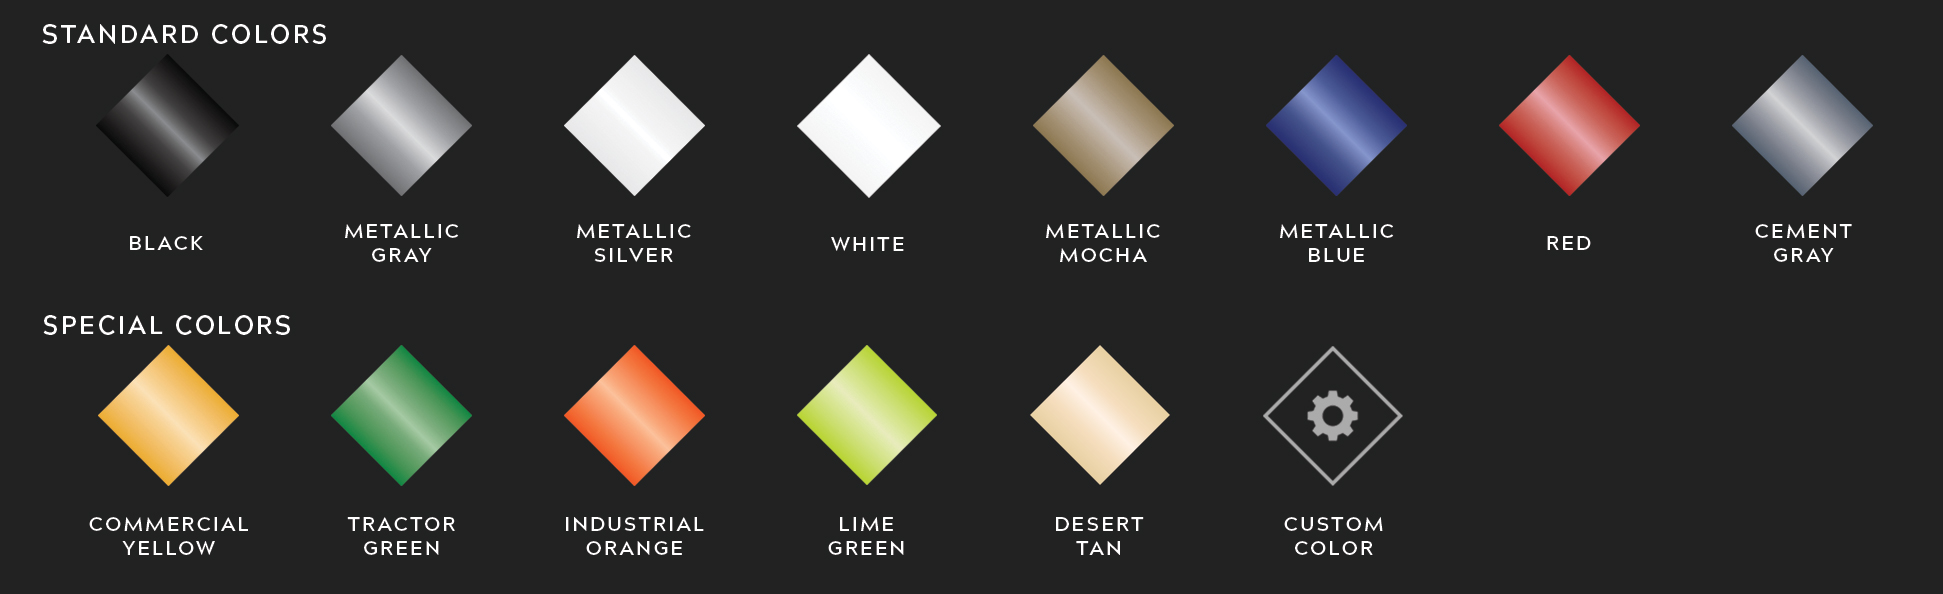 Trailer Paint Swatches